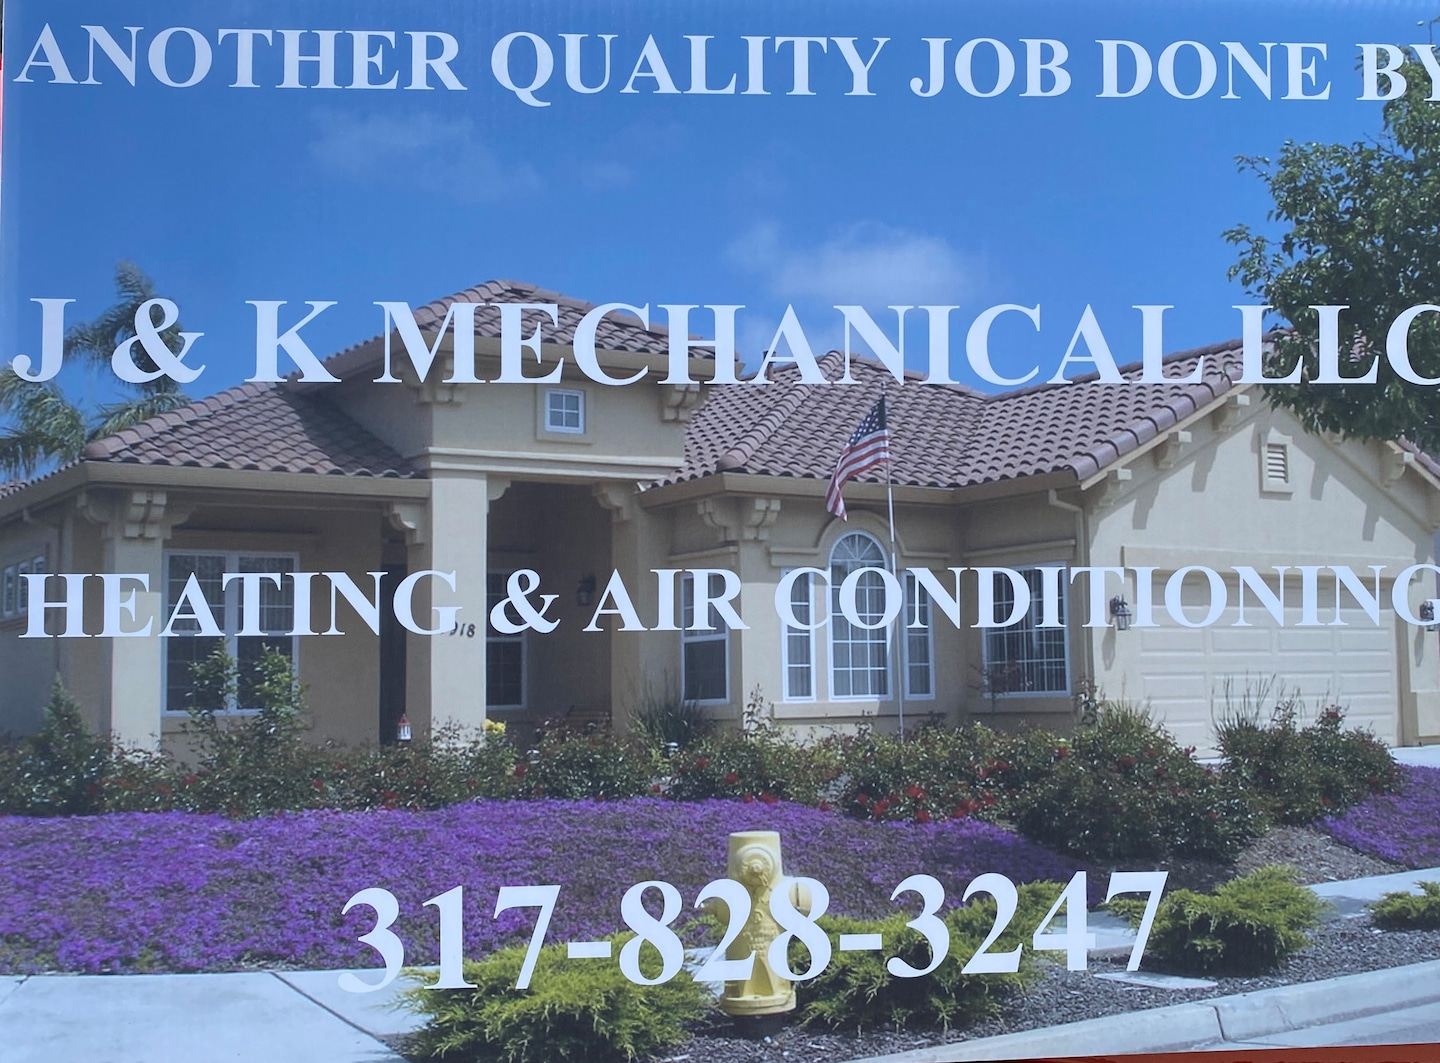 J&K Mechanical, Heating, and Air Conditioning, LLC